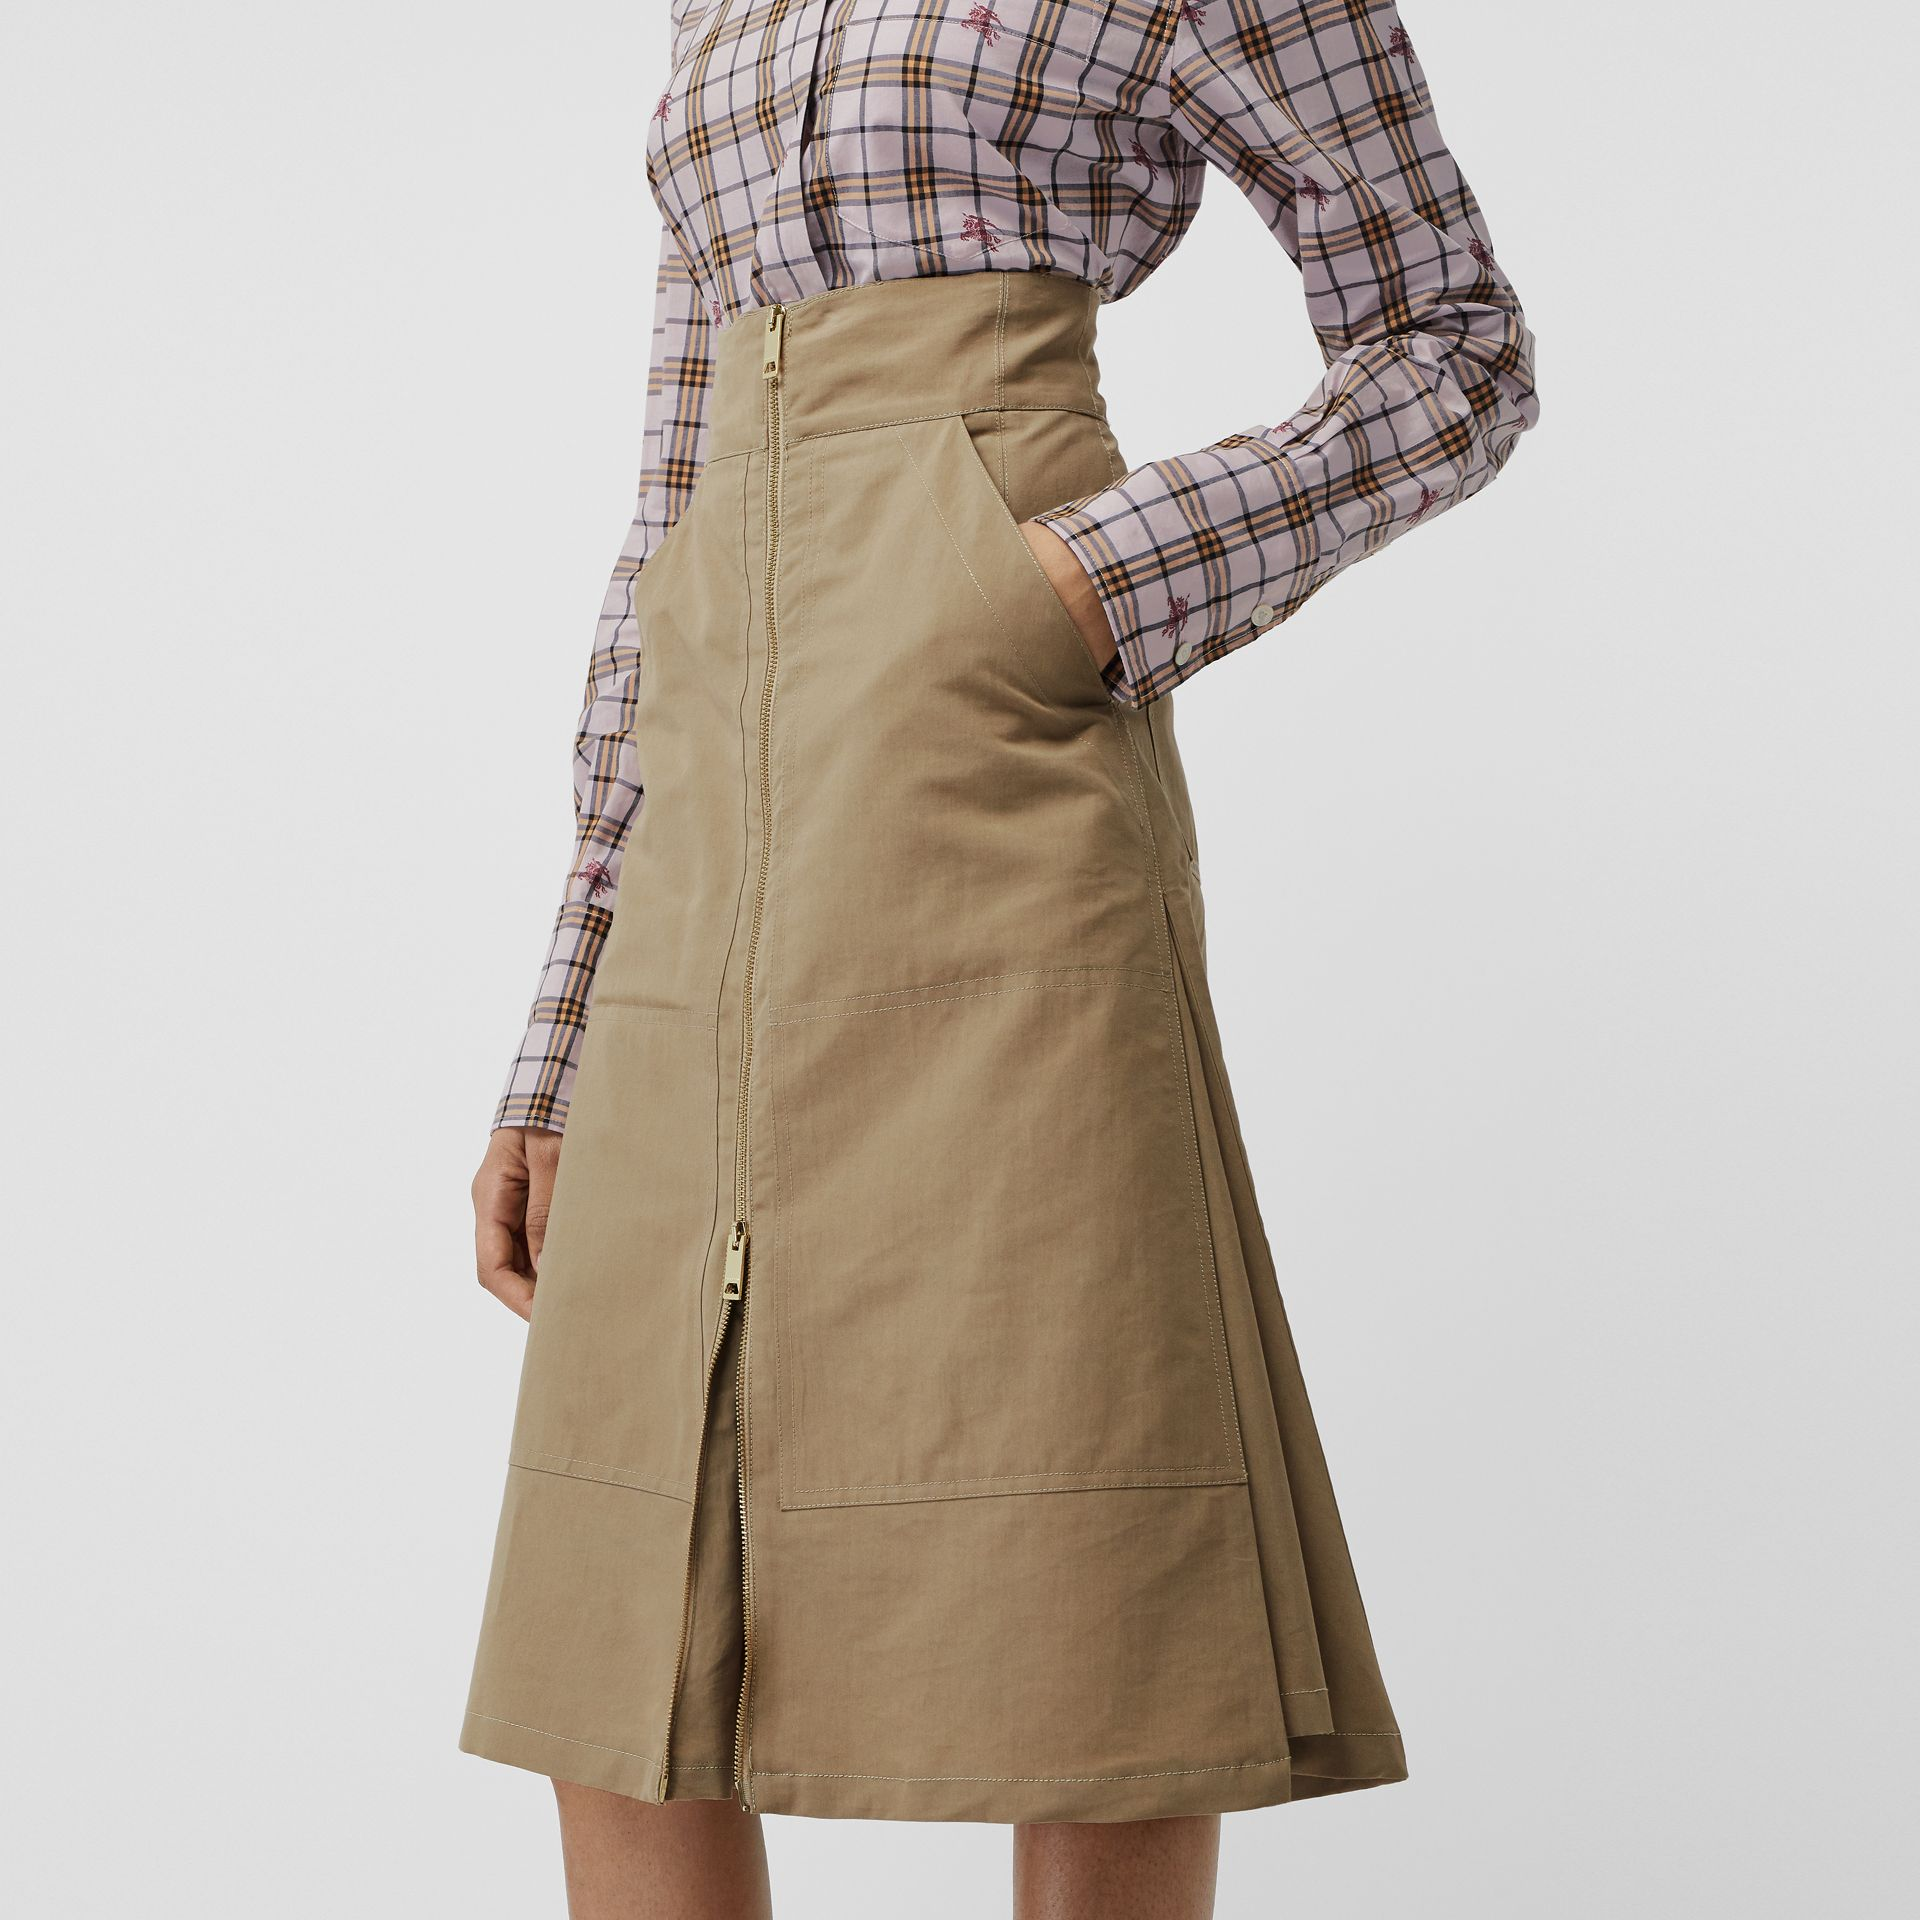 Cotton Silk High-waisted Skirt in Beige - Women | Burberry Canada - gallery image 3